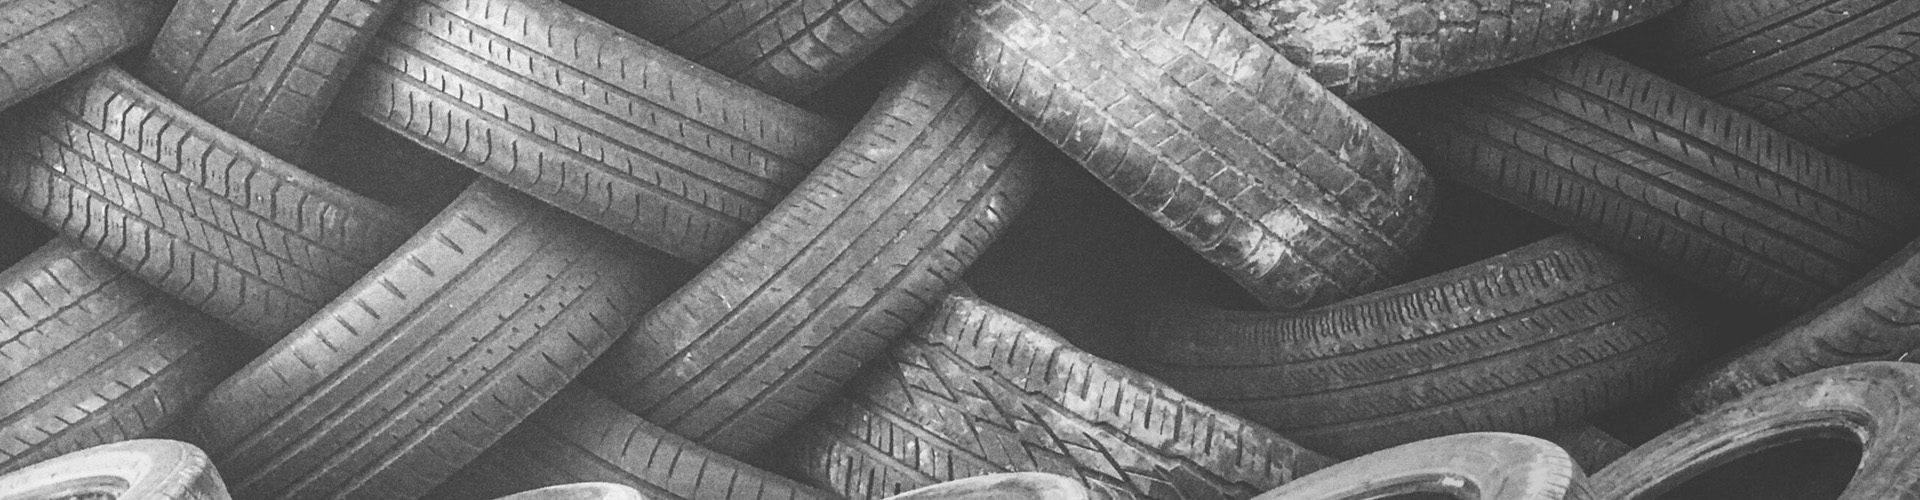 Choosing the right tyres